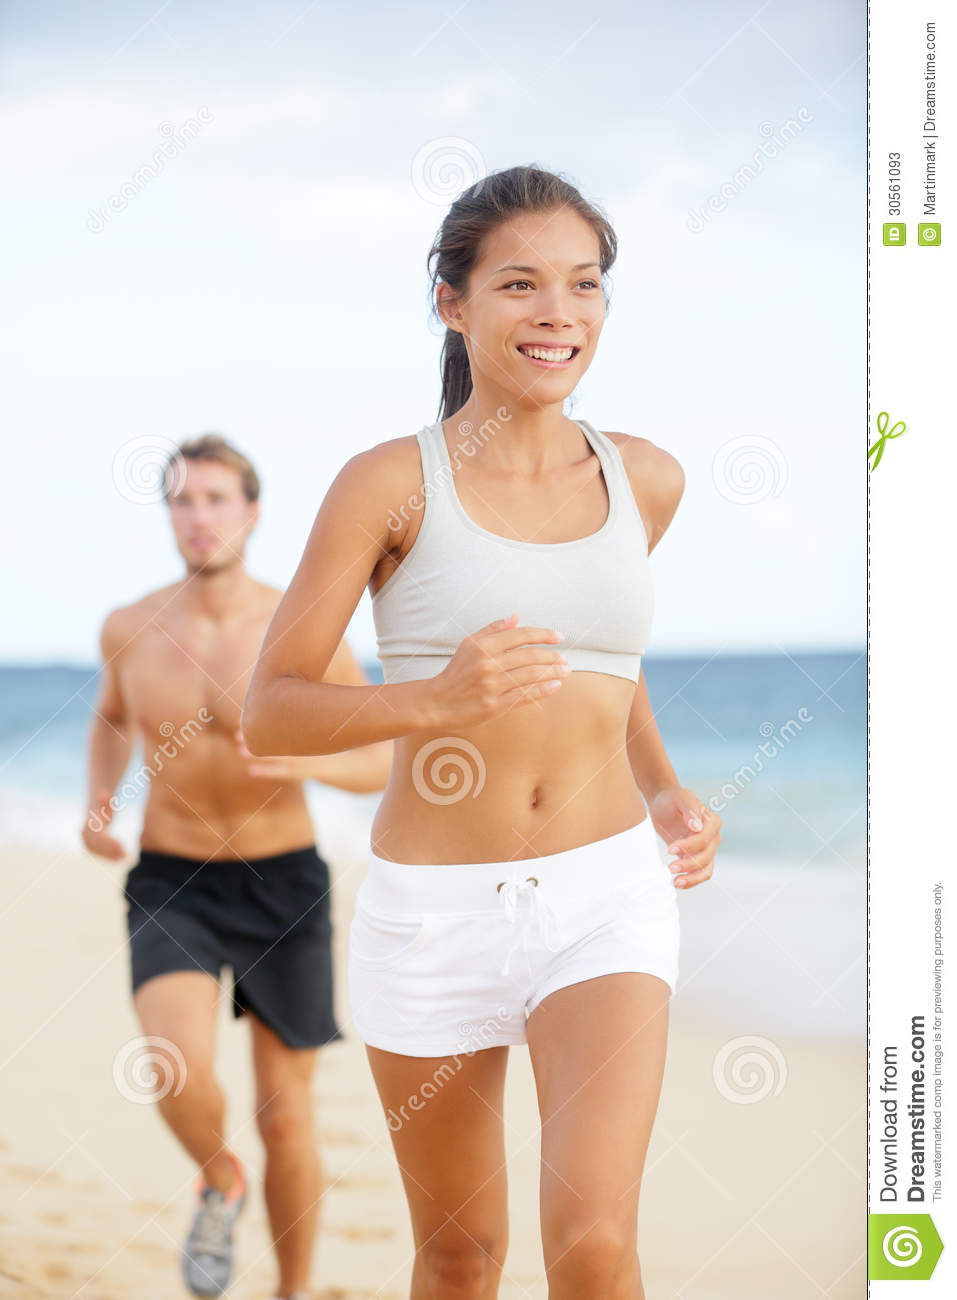 Male and Female Fitness Models